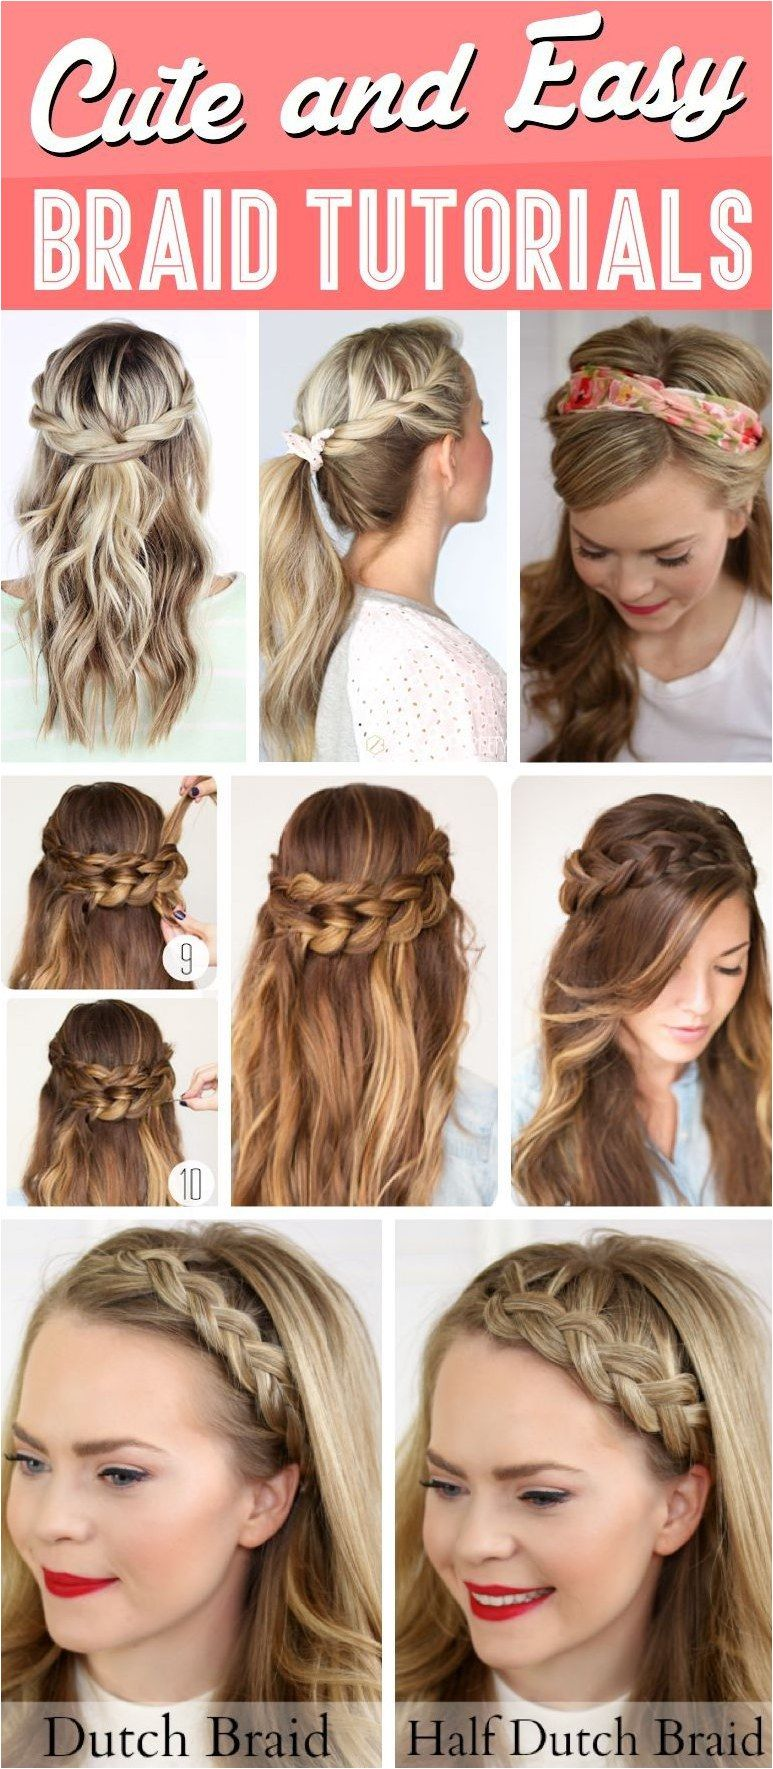 cute and easy braid tutorials that are perfect for any occasion